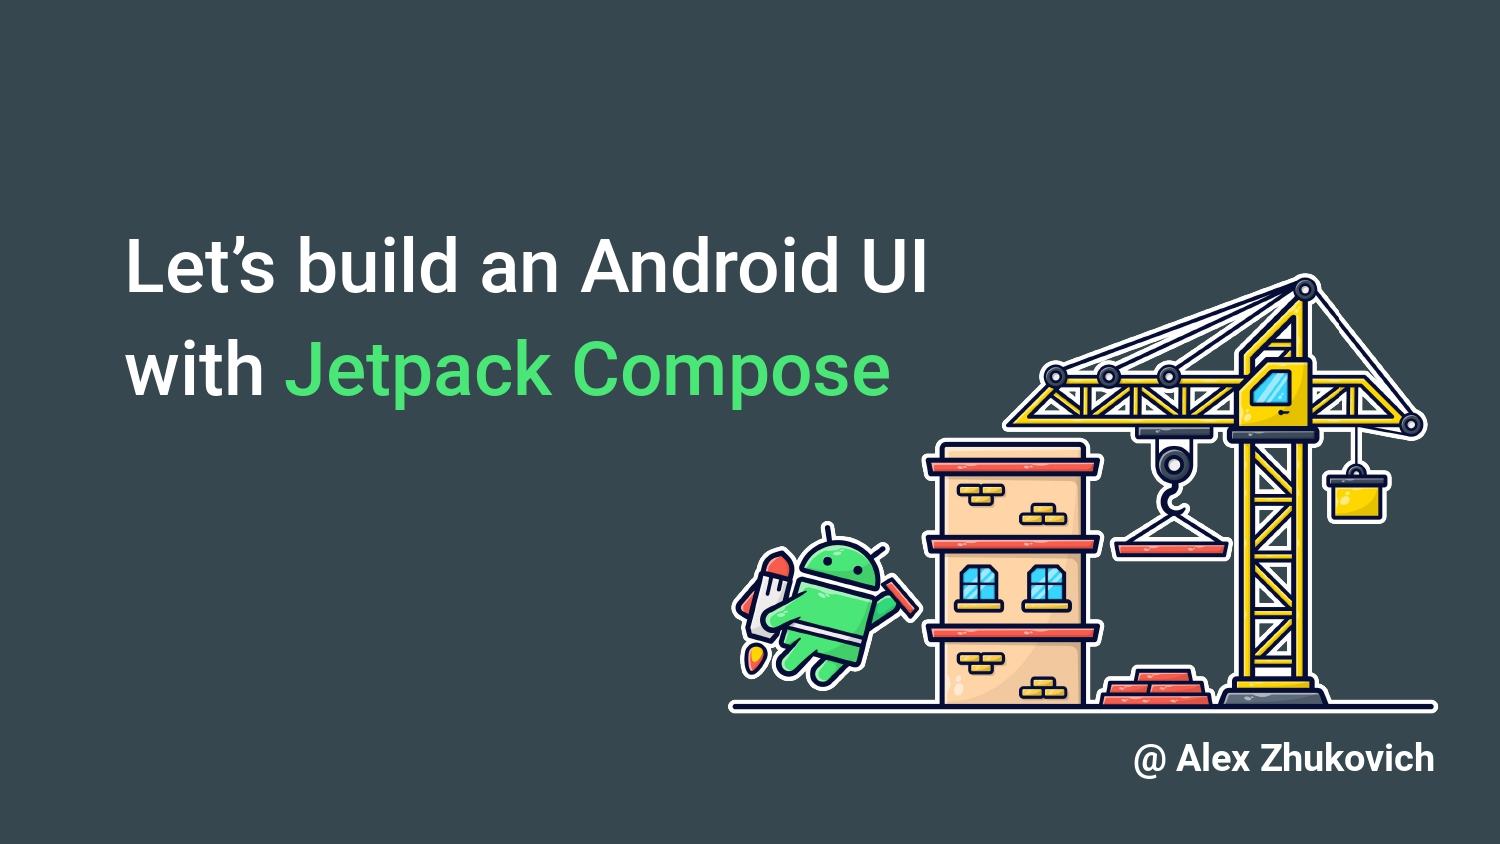 Let's build an Android UI with Jetpack Compose by Alex Zhukovich